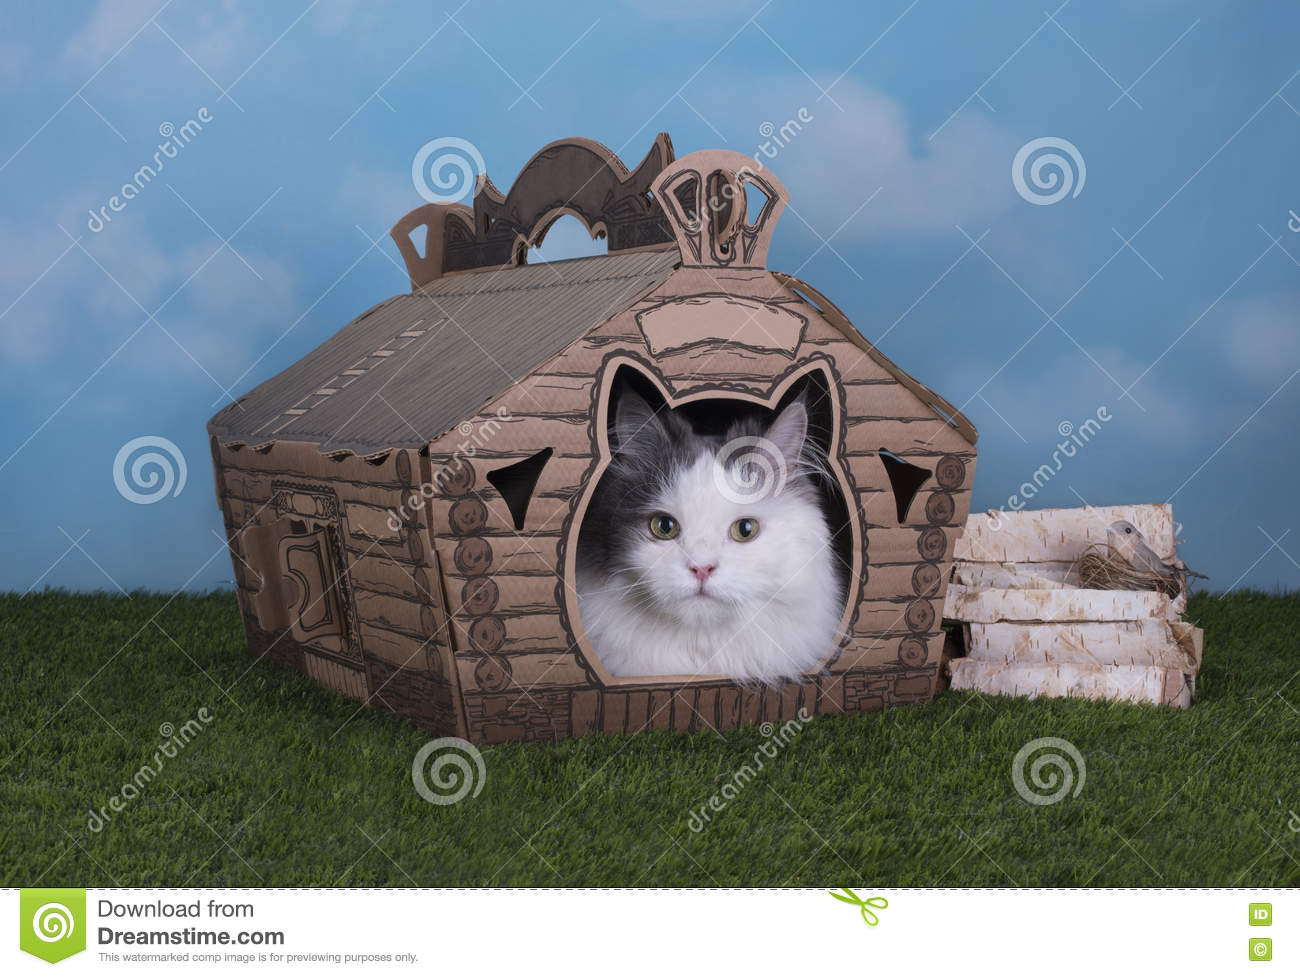 Cat lives in his own house in the village